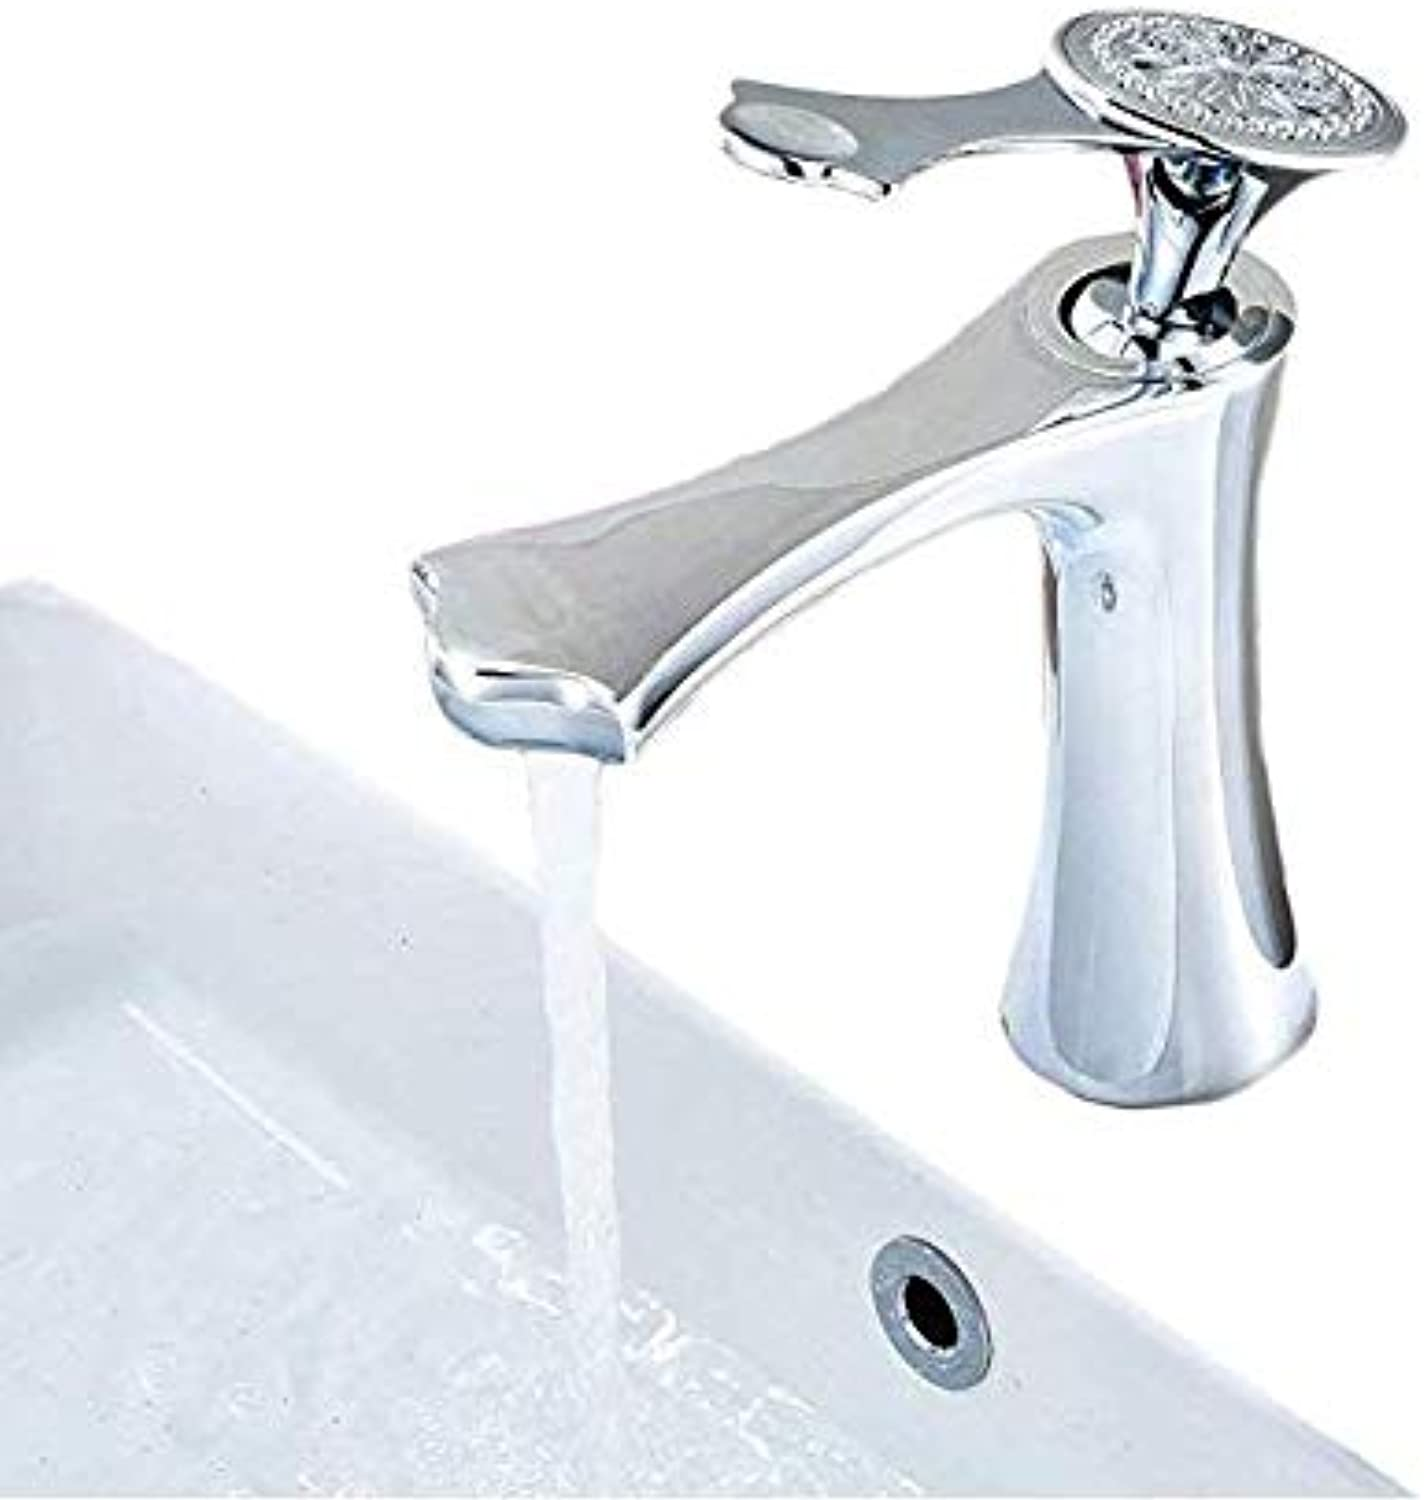 Basin Faucet Retro Faucetbasin Mixer Tap Chrome Carved Pattern Bathroom Sink Taps Lever Wash Basin Faucet